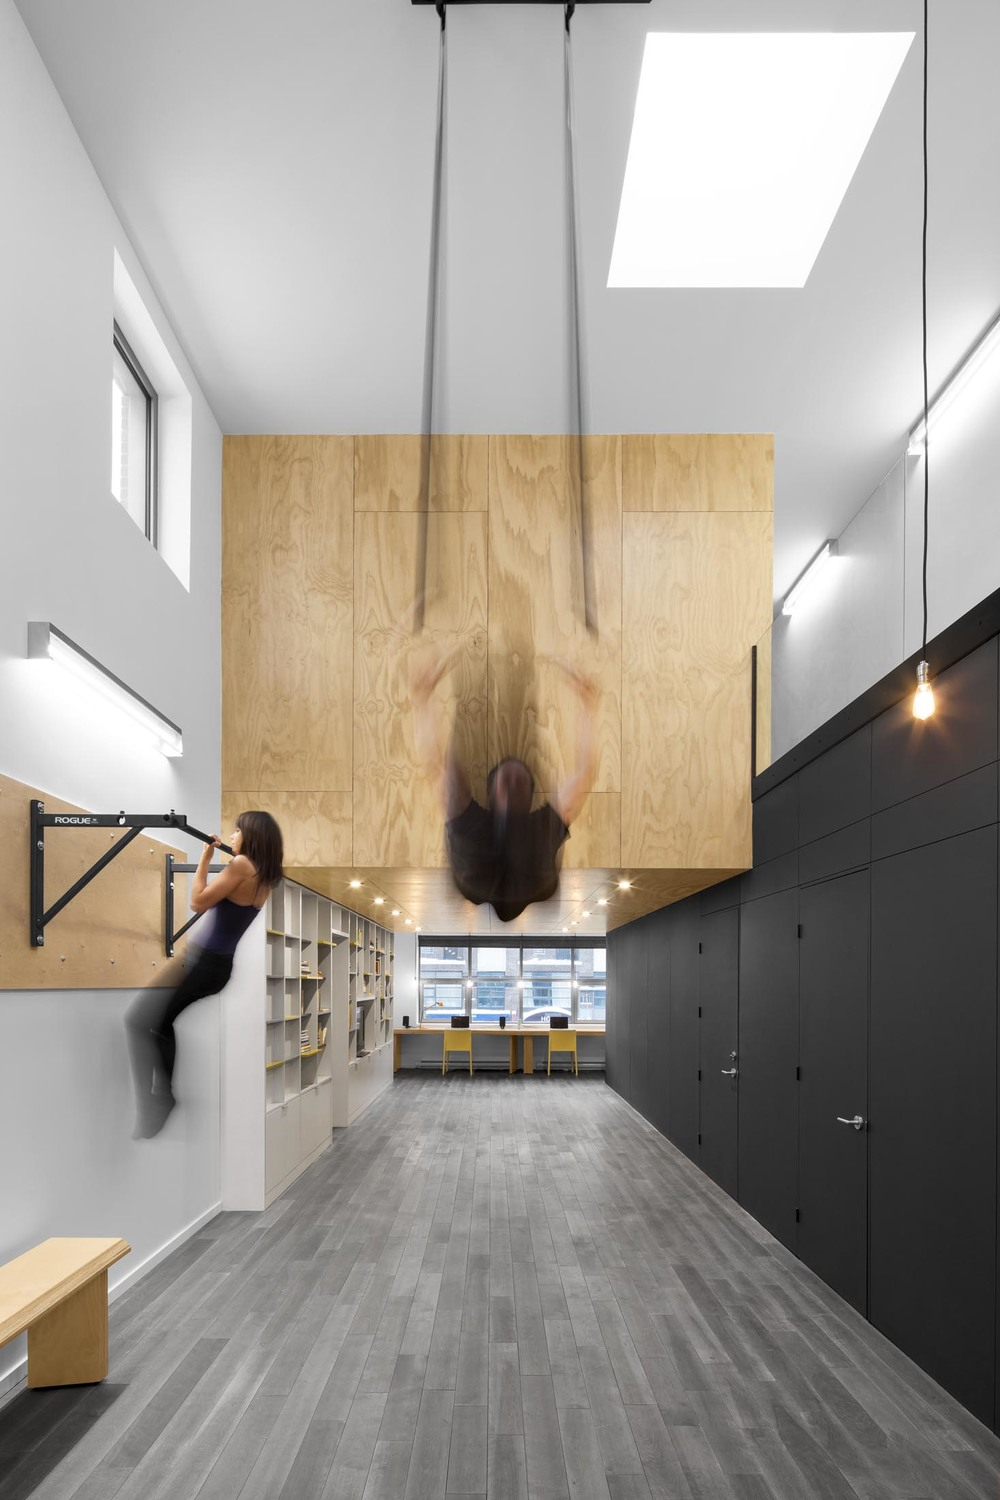 In Suspension: An Athletic House by Naturehumaine